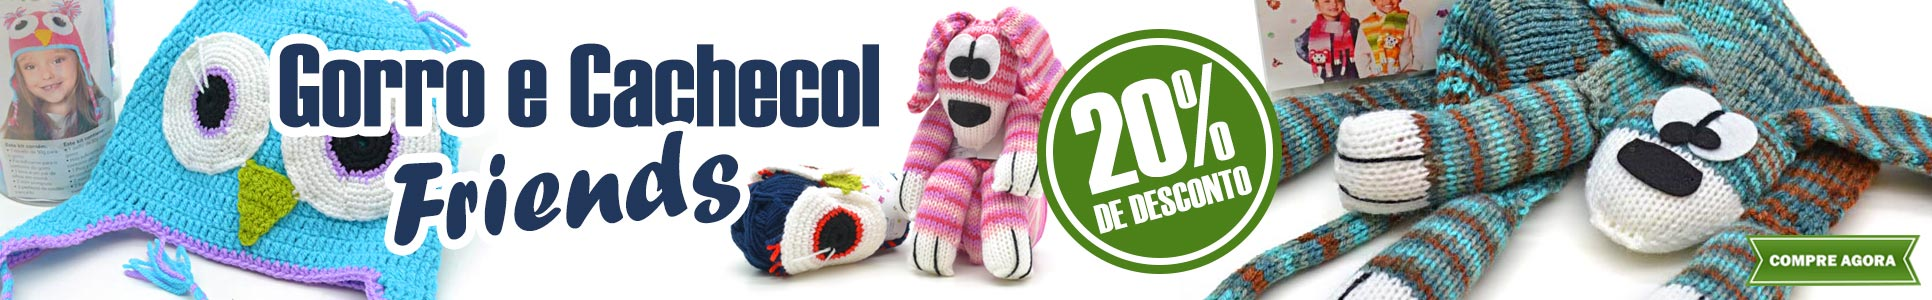 Gorro e Cachecol Friends 20% OFF